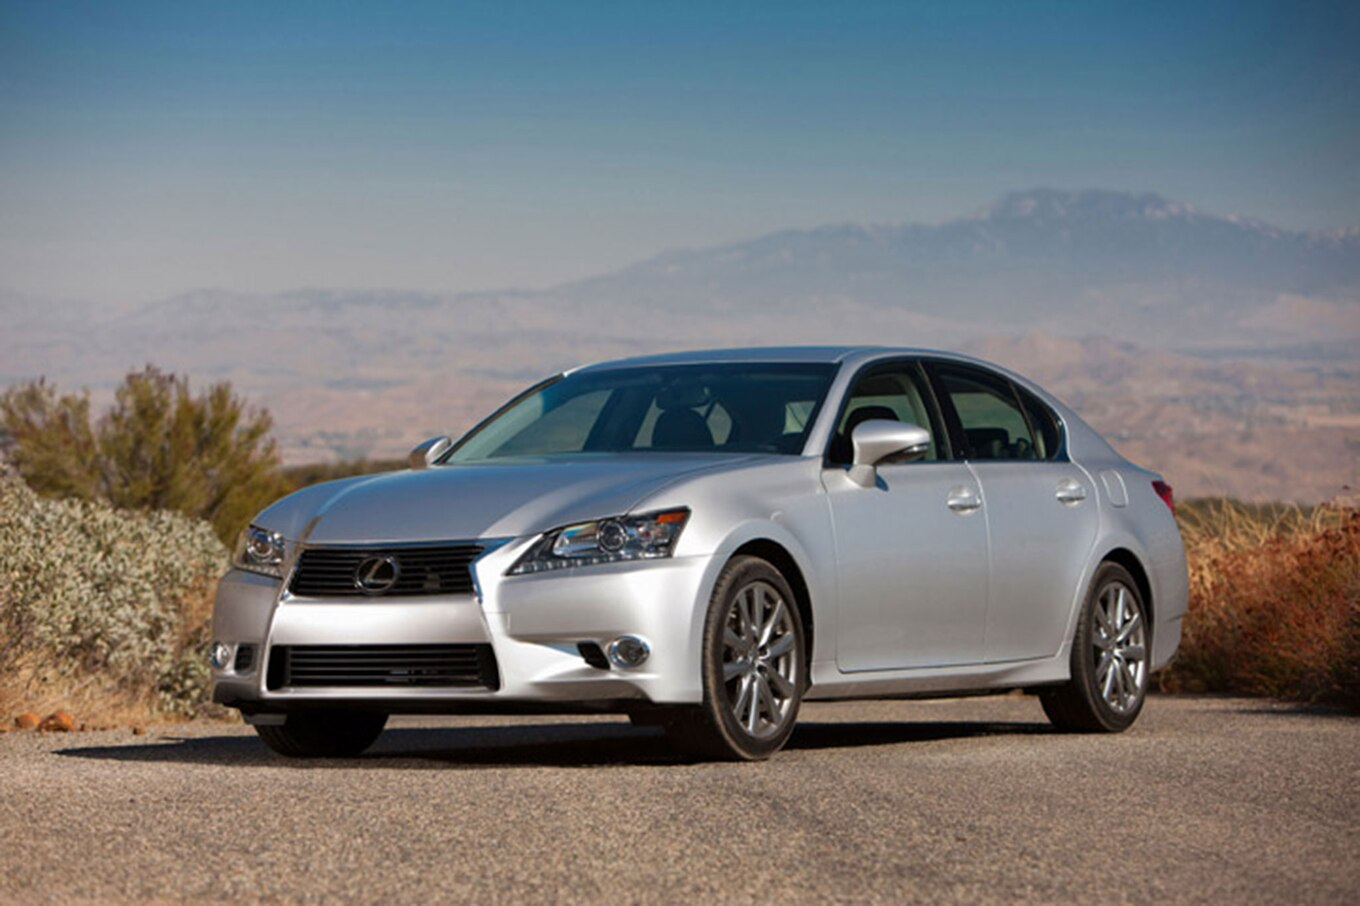 2014 Lexus GS350 Reviews and Rating